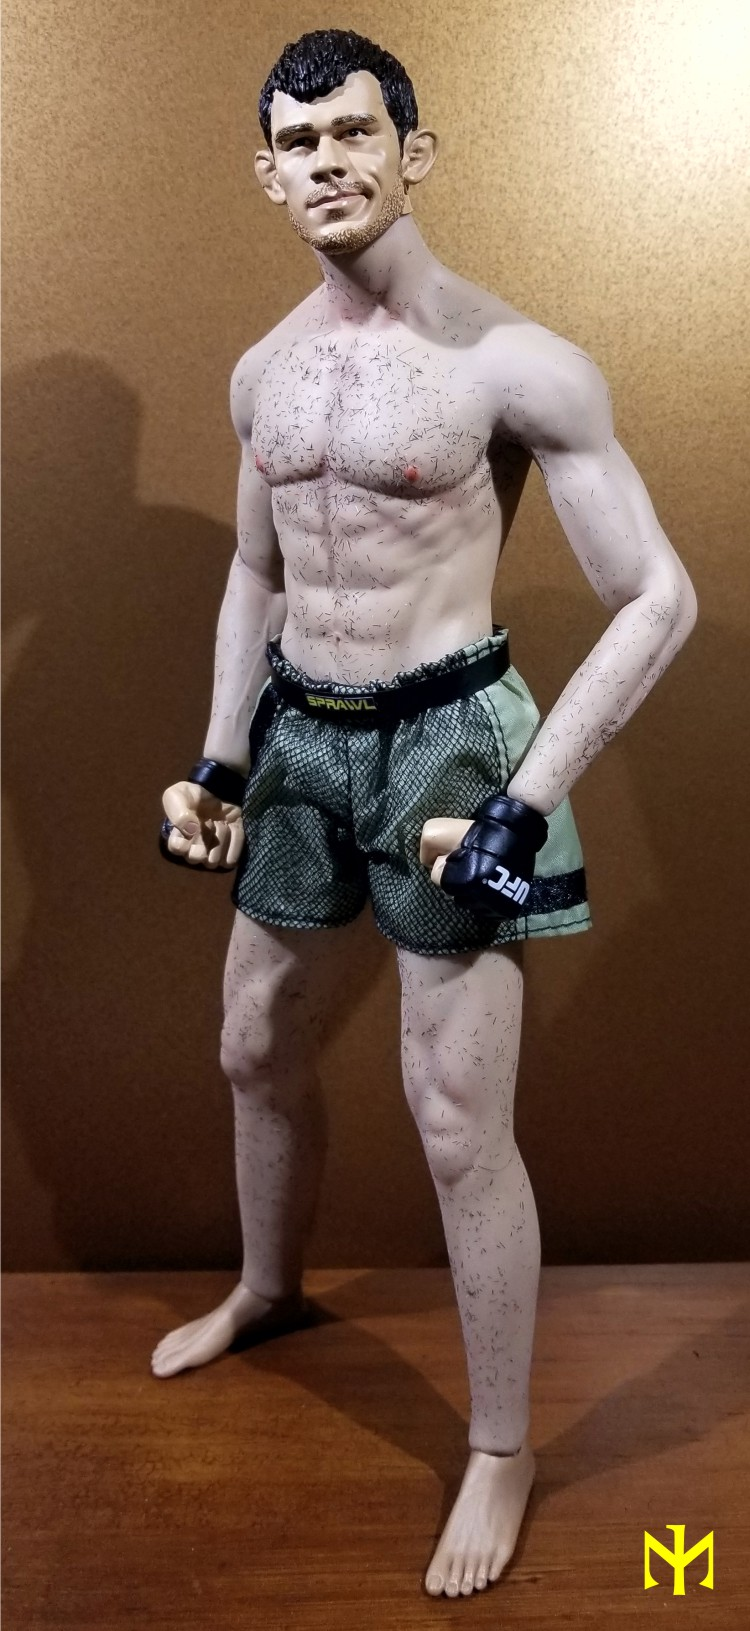 ufc - Kitbash UFC Champion Forrest Griffin Forgri27